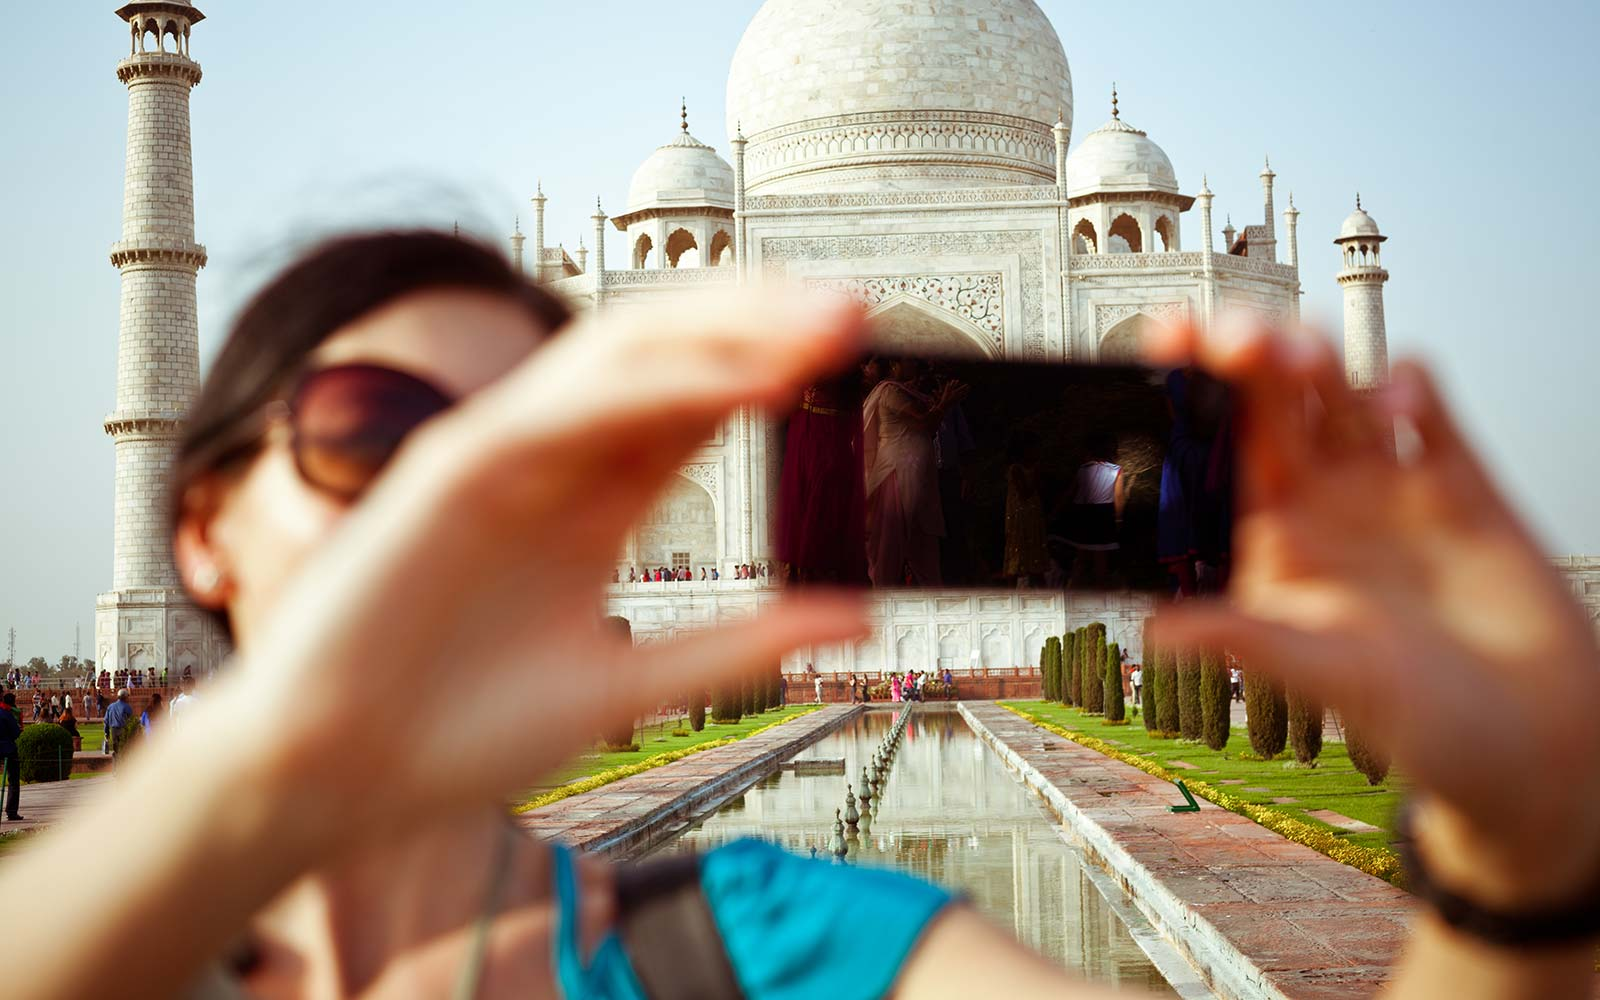 India Has the Most Selfie Deaths of Anywhere in the World